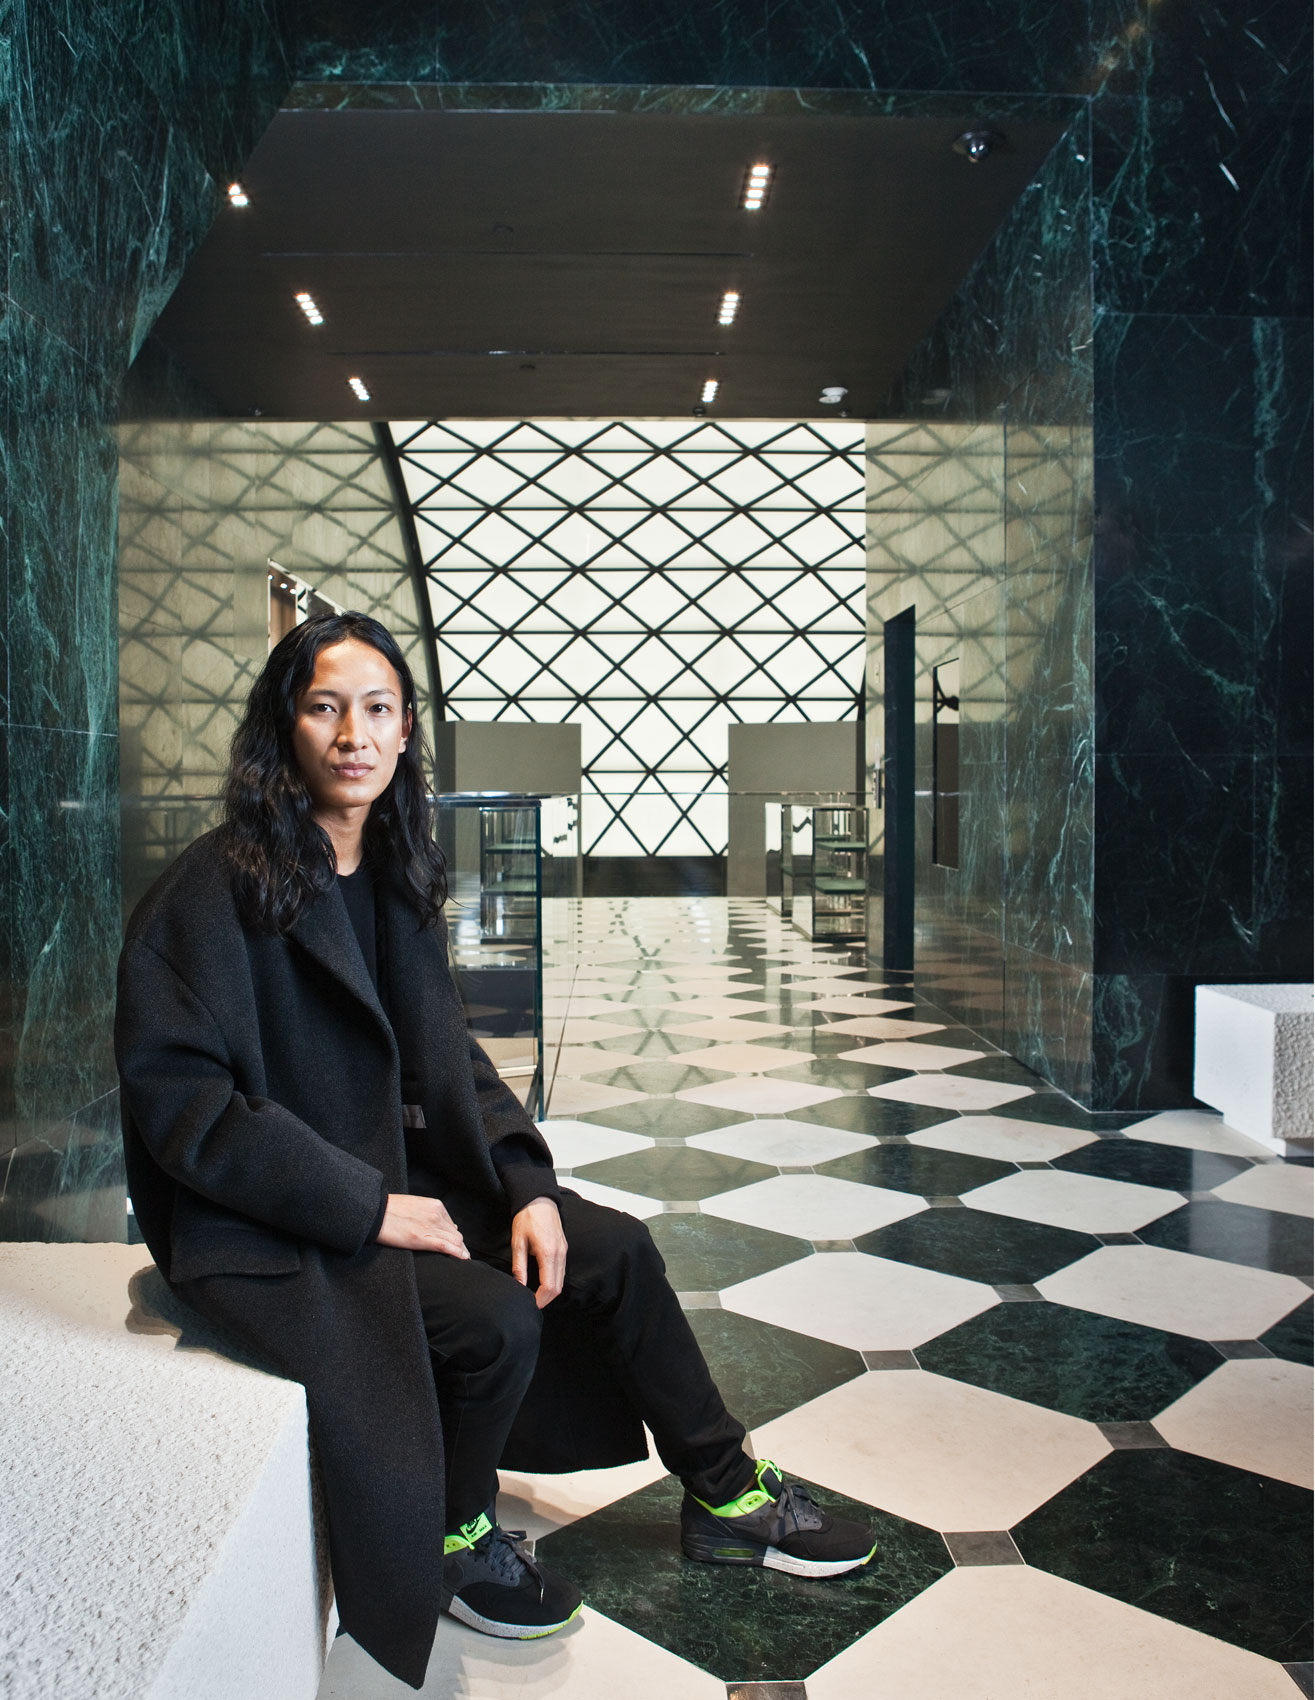 Heroic portrait of Alexander Wang at Balenciaga in NYC by Celebrity Photographer Michael Weschler, New York City